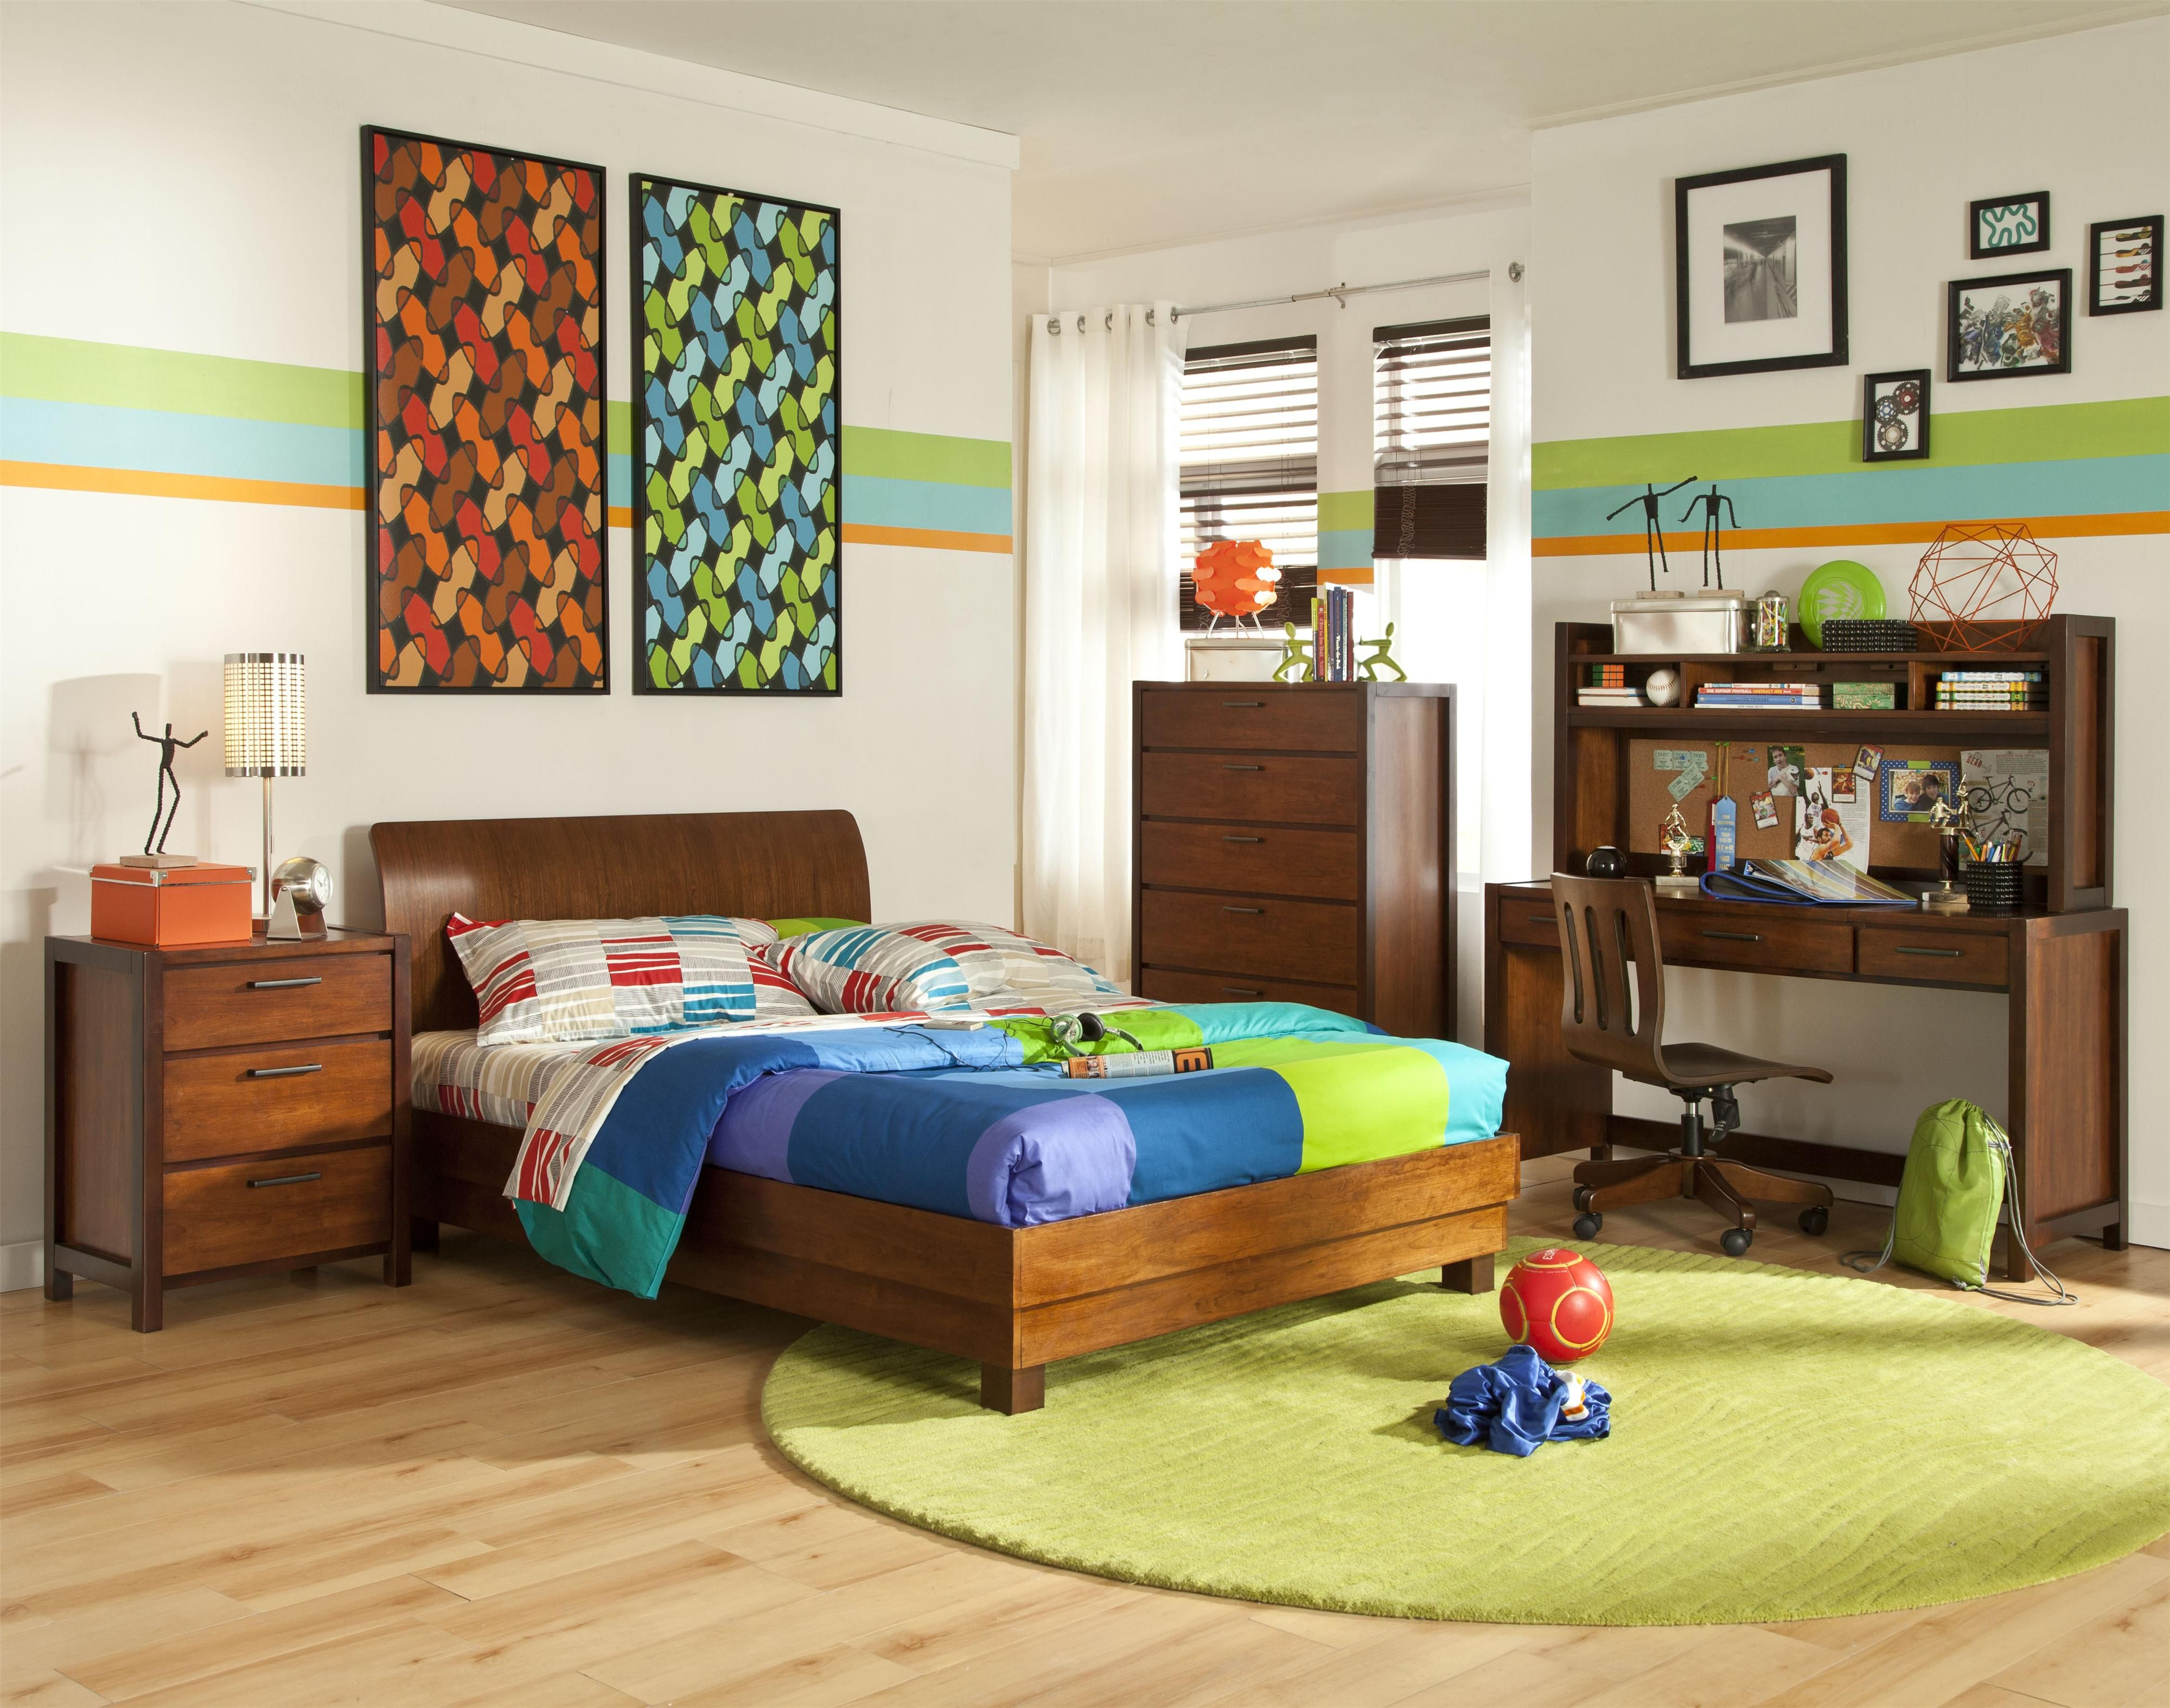 The Eclipse 1 Mid Century Modern Full Size Platform Bed Is Available At Rotmans In Worcester Ma